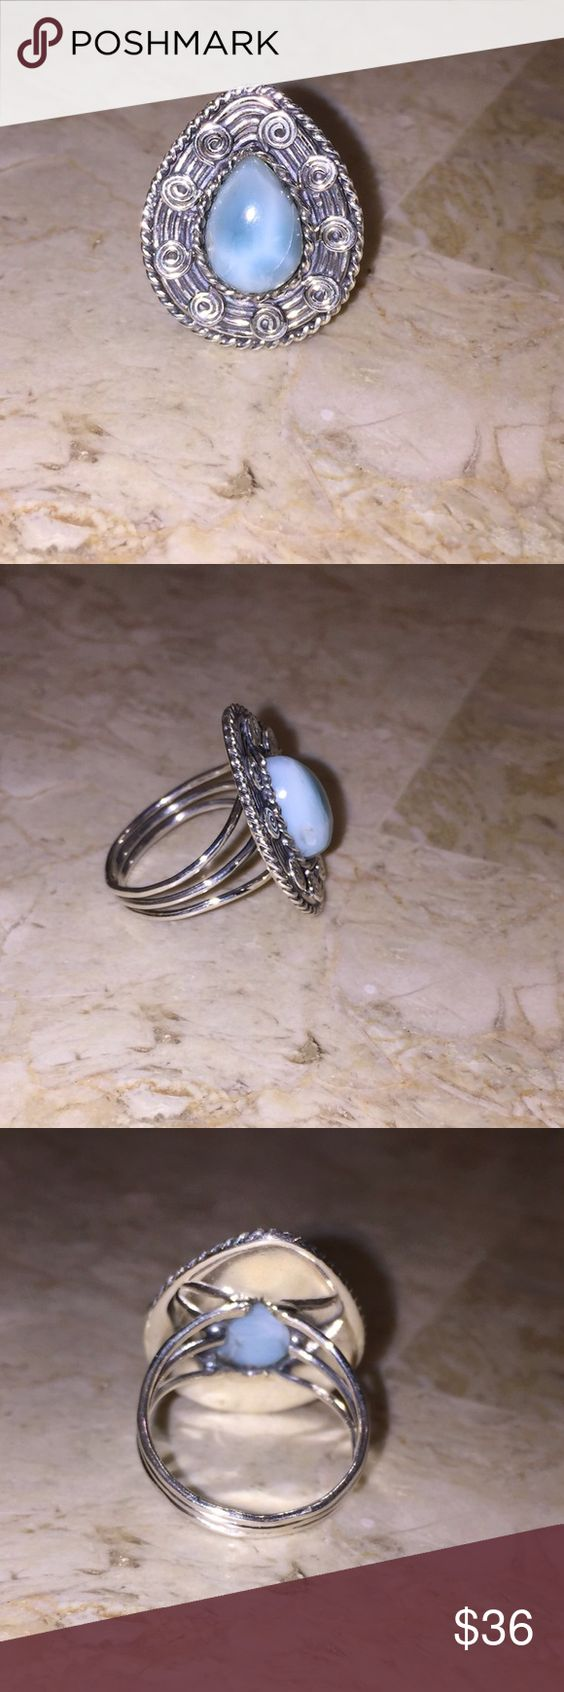 Sterling Silver Larimar Ring Sz 8.75 Beautiful new handcrafted Sterling silver natural Larimar ring. Size 8.75 Larimar is found in only location in the world. Sterling Silver Jewelry Rings